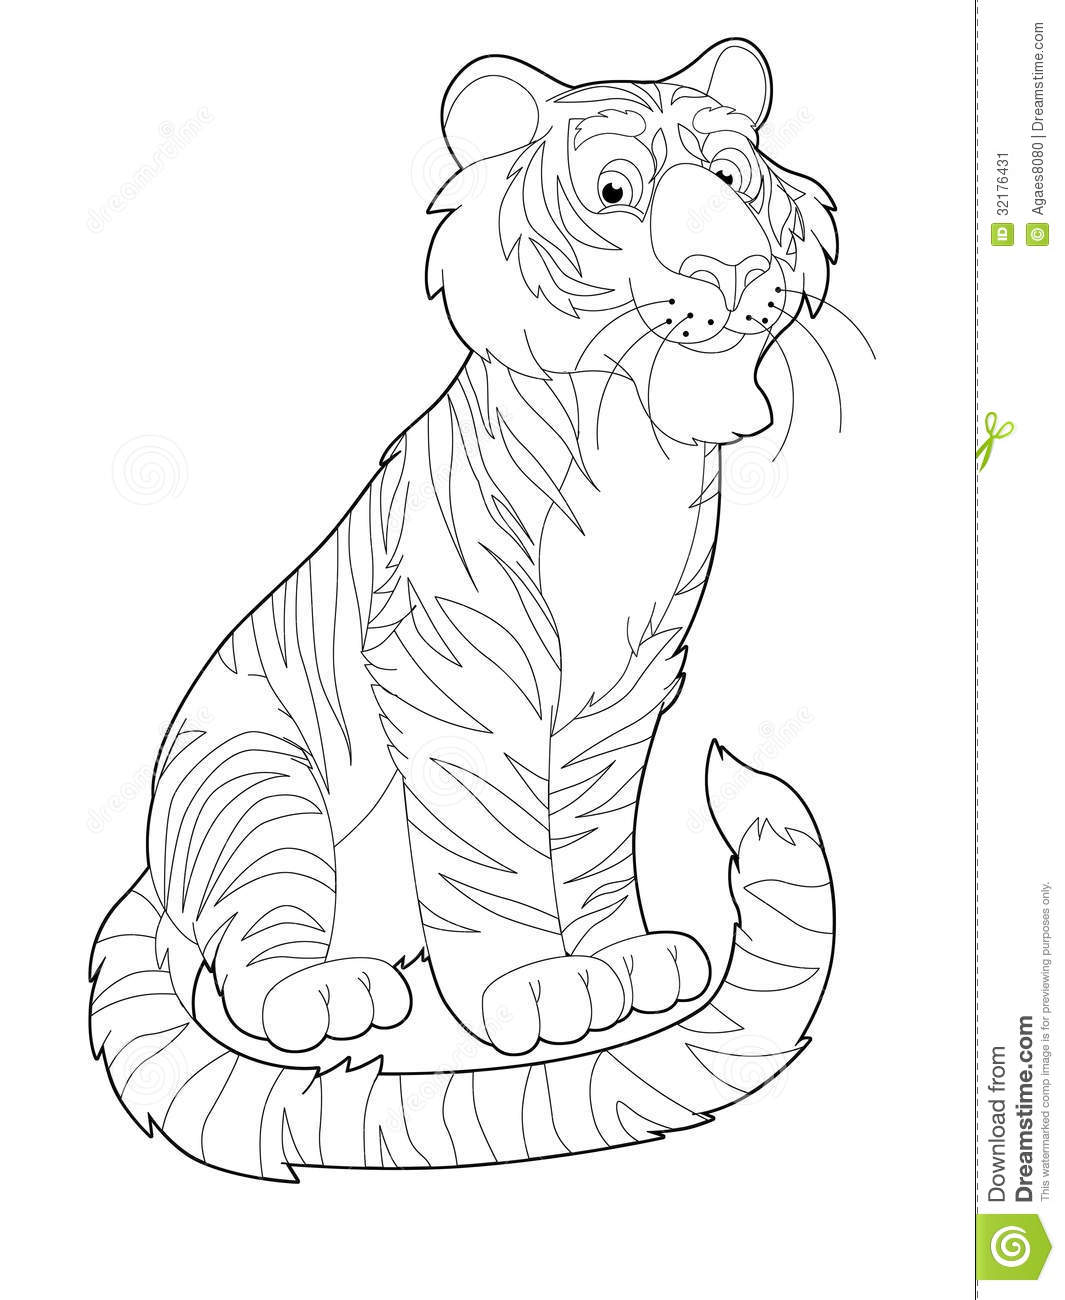 Cartoon safari coloring page illustration for the children by